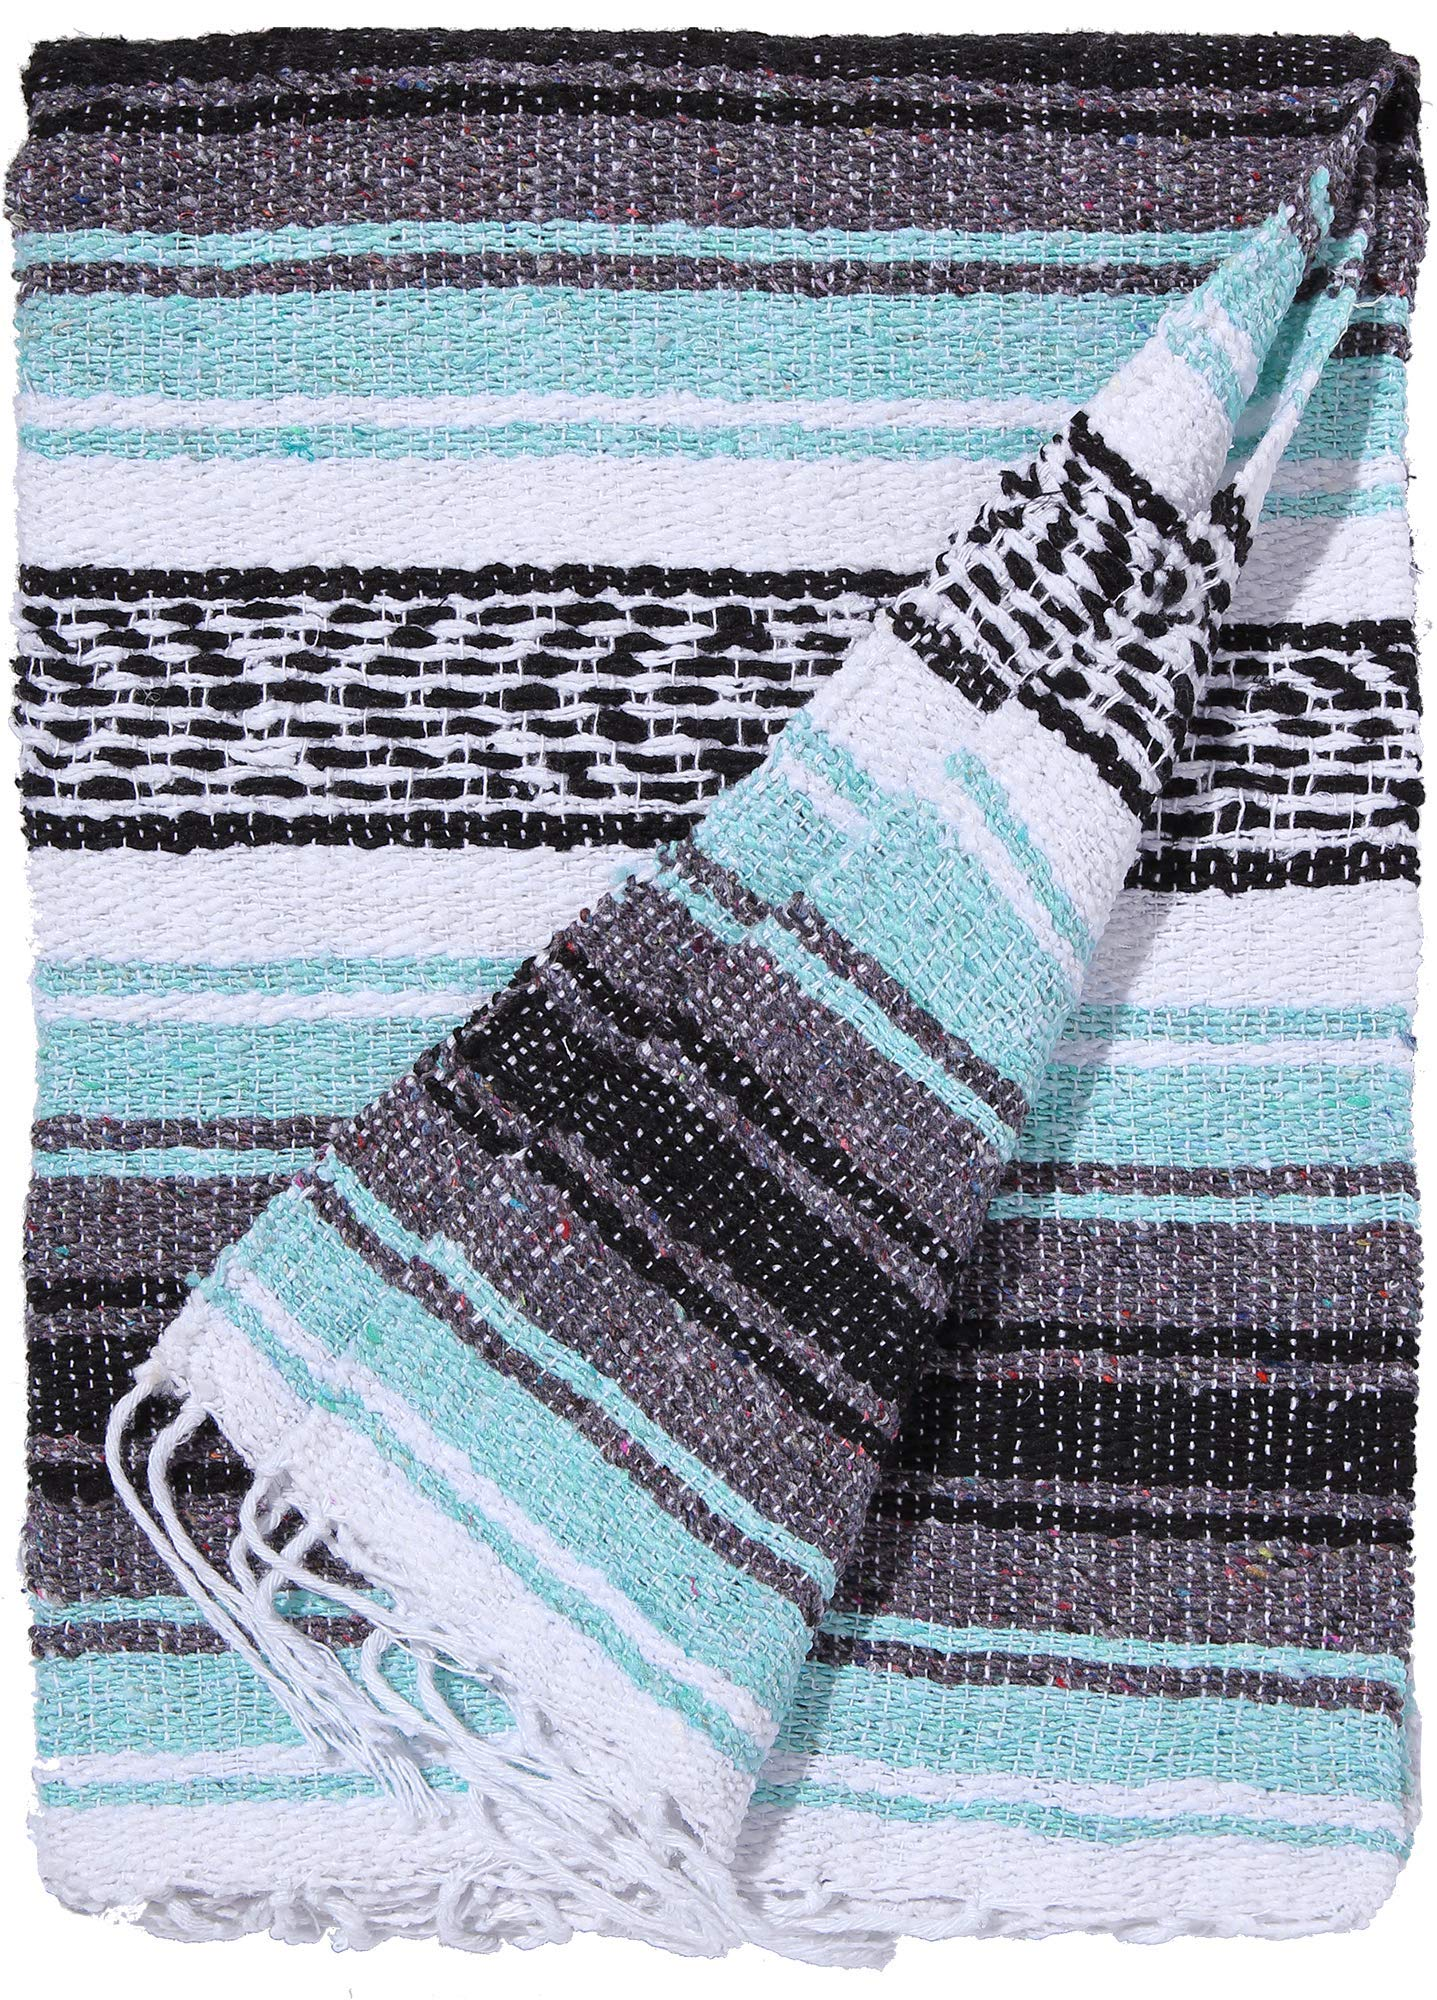 El Paso Designs Genuine Mexican Falsa Blanket - Yoga Studio Blanket, Colorful, Soft Woven Serape Imported from Mexico (Cool Mint & Gray) by El Paso Designs (Image #2)